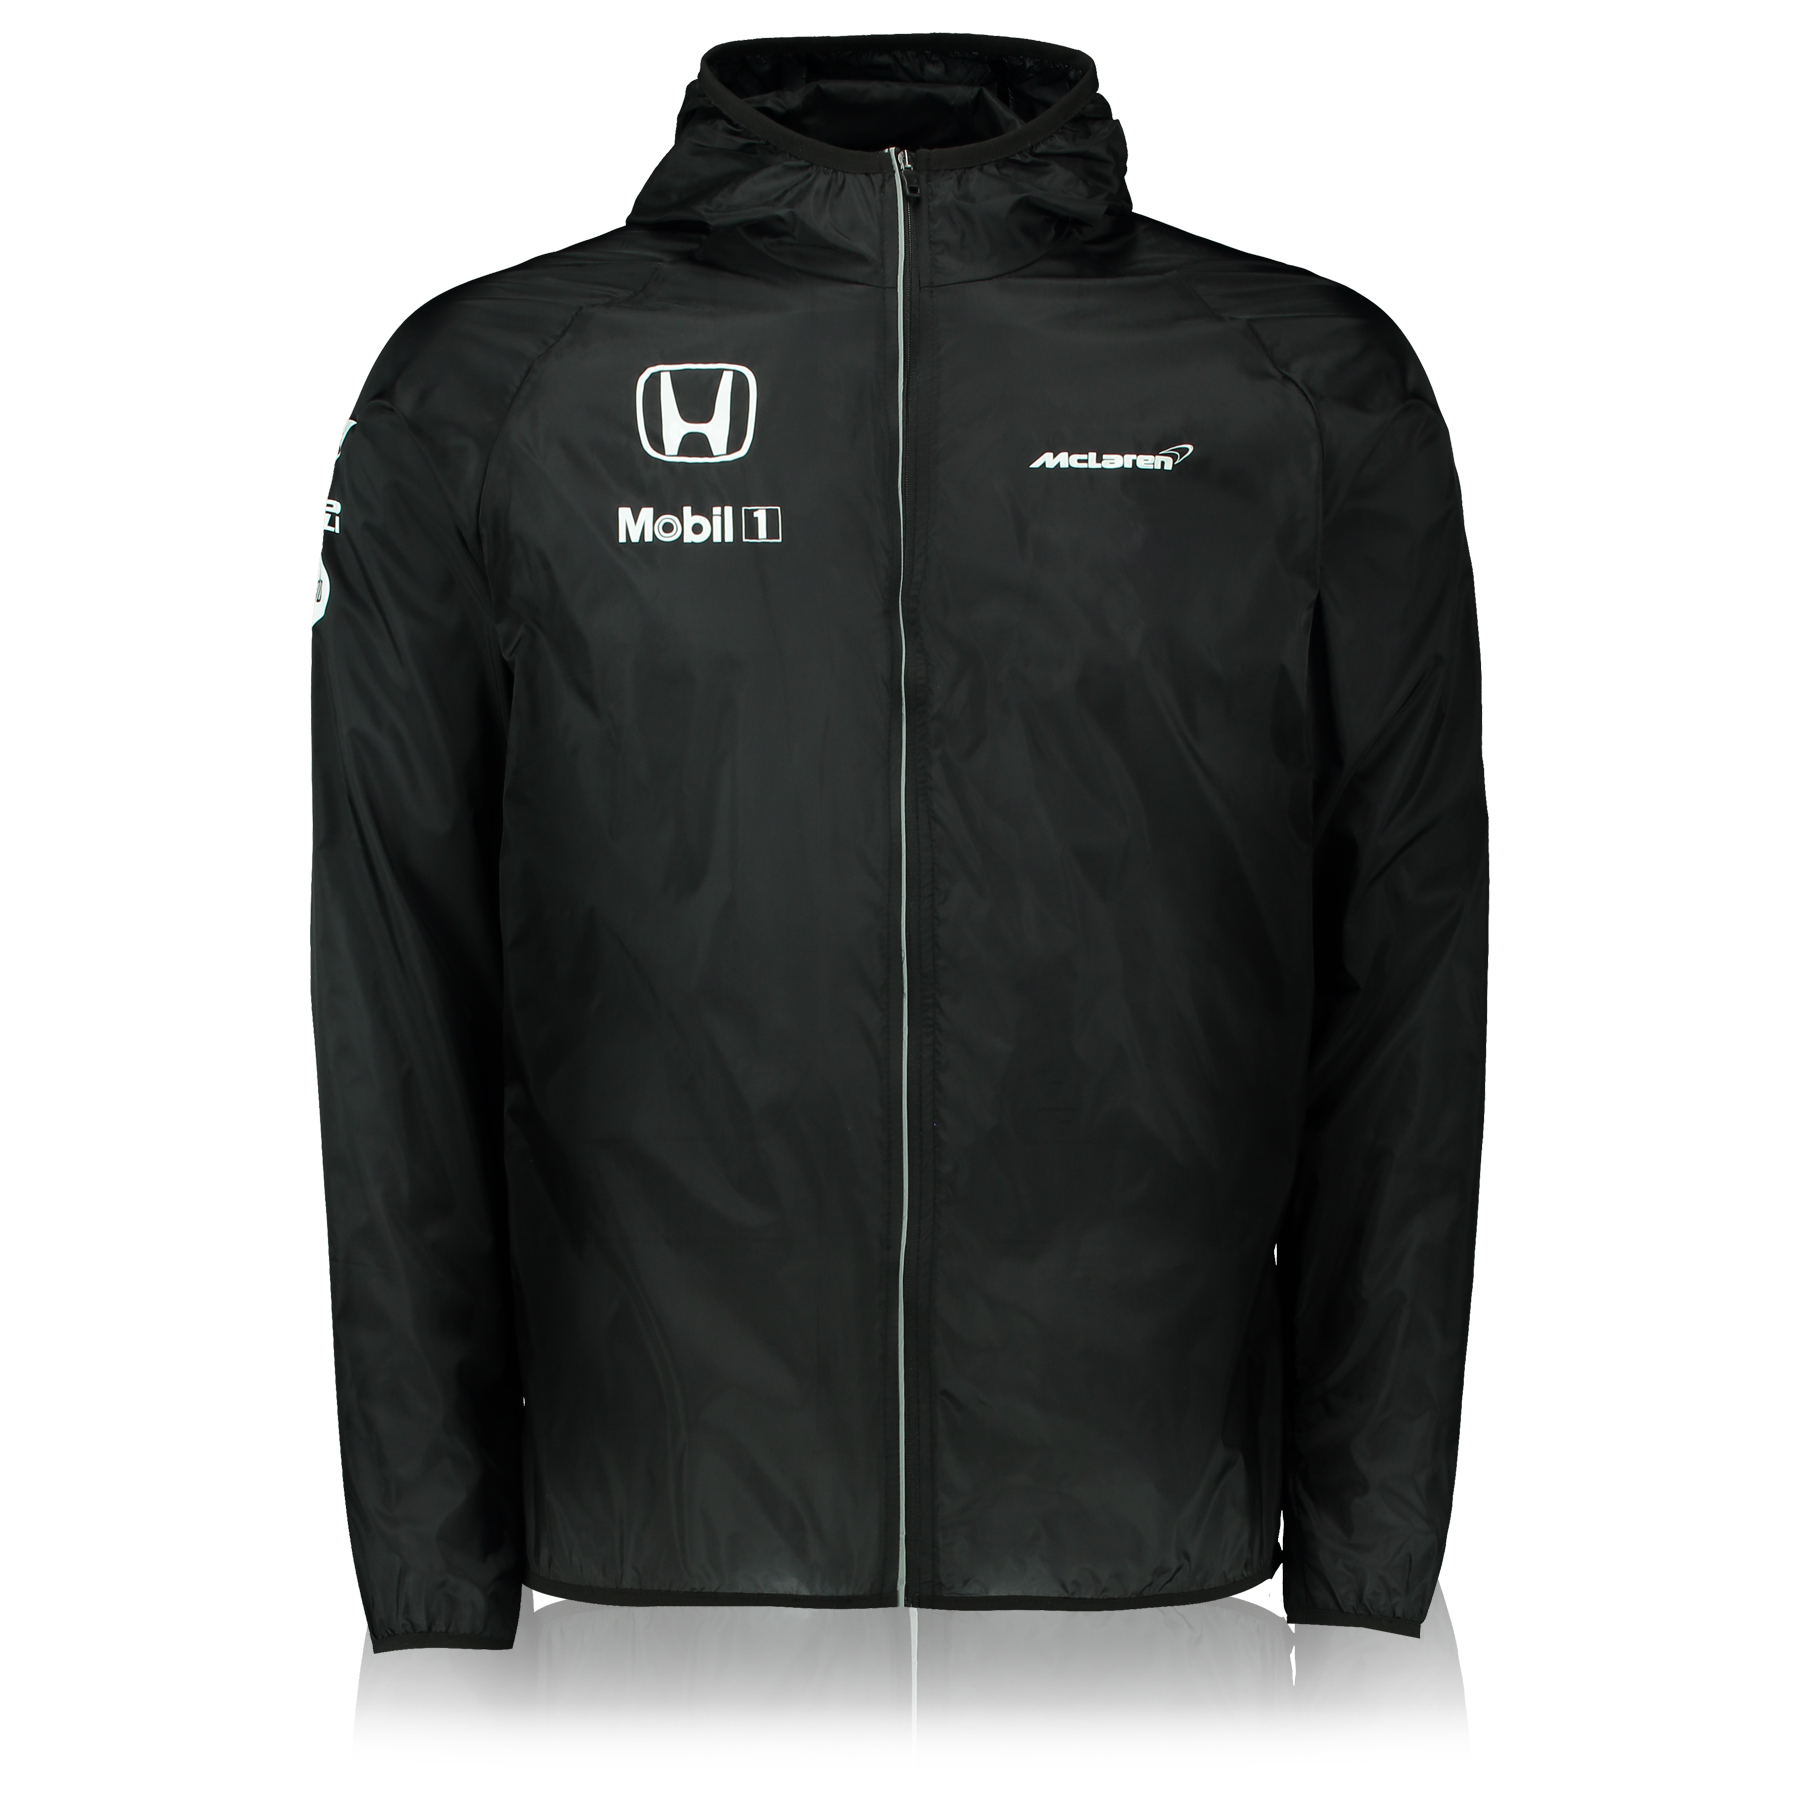 McLaren Honda Team Ultra-Light Water Repellent Jacket Black